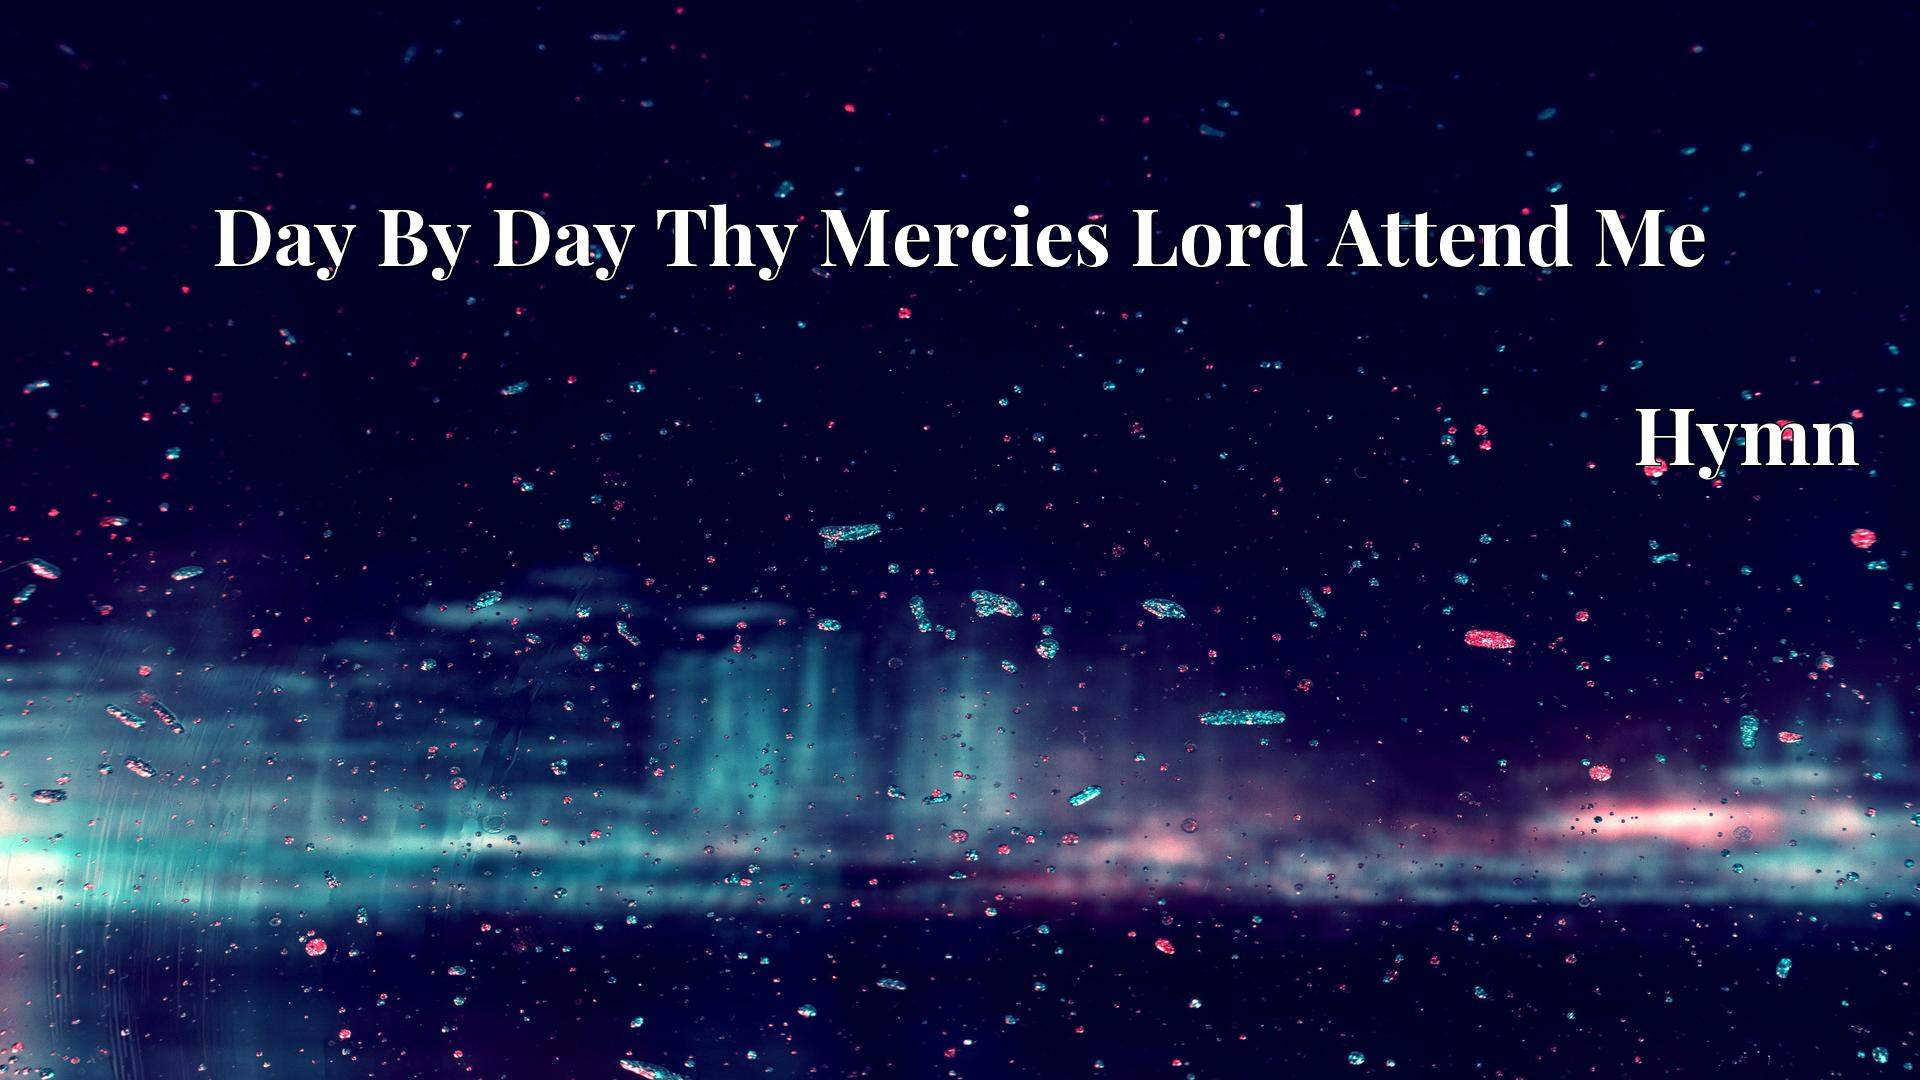 Day By Day Thy Mercies Lord Attend Me - Hymn